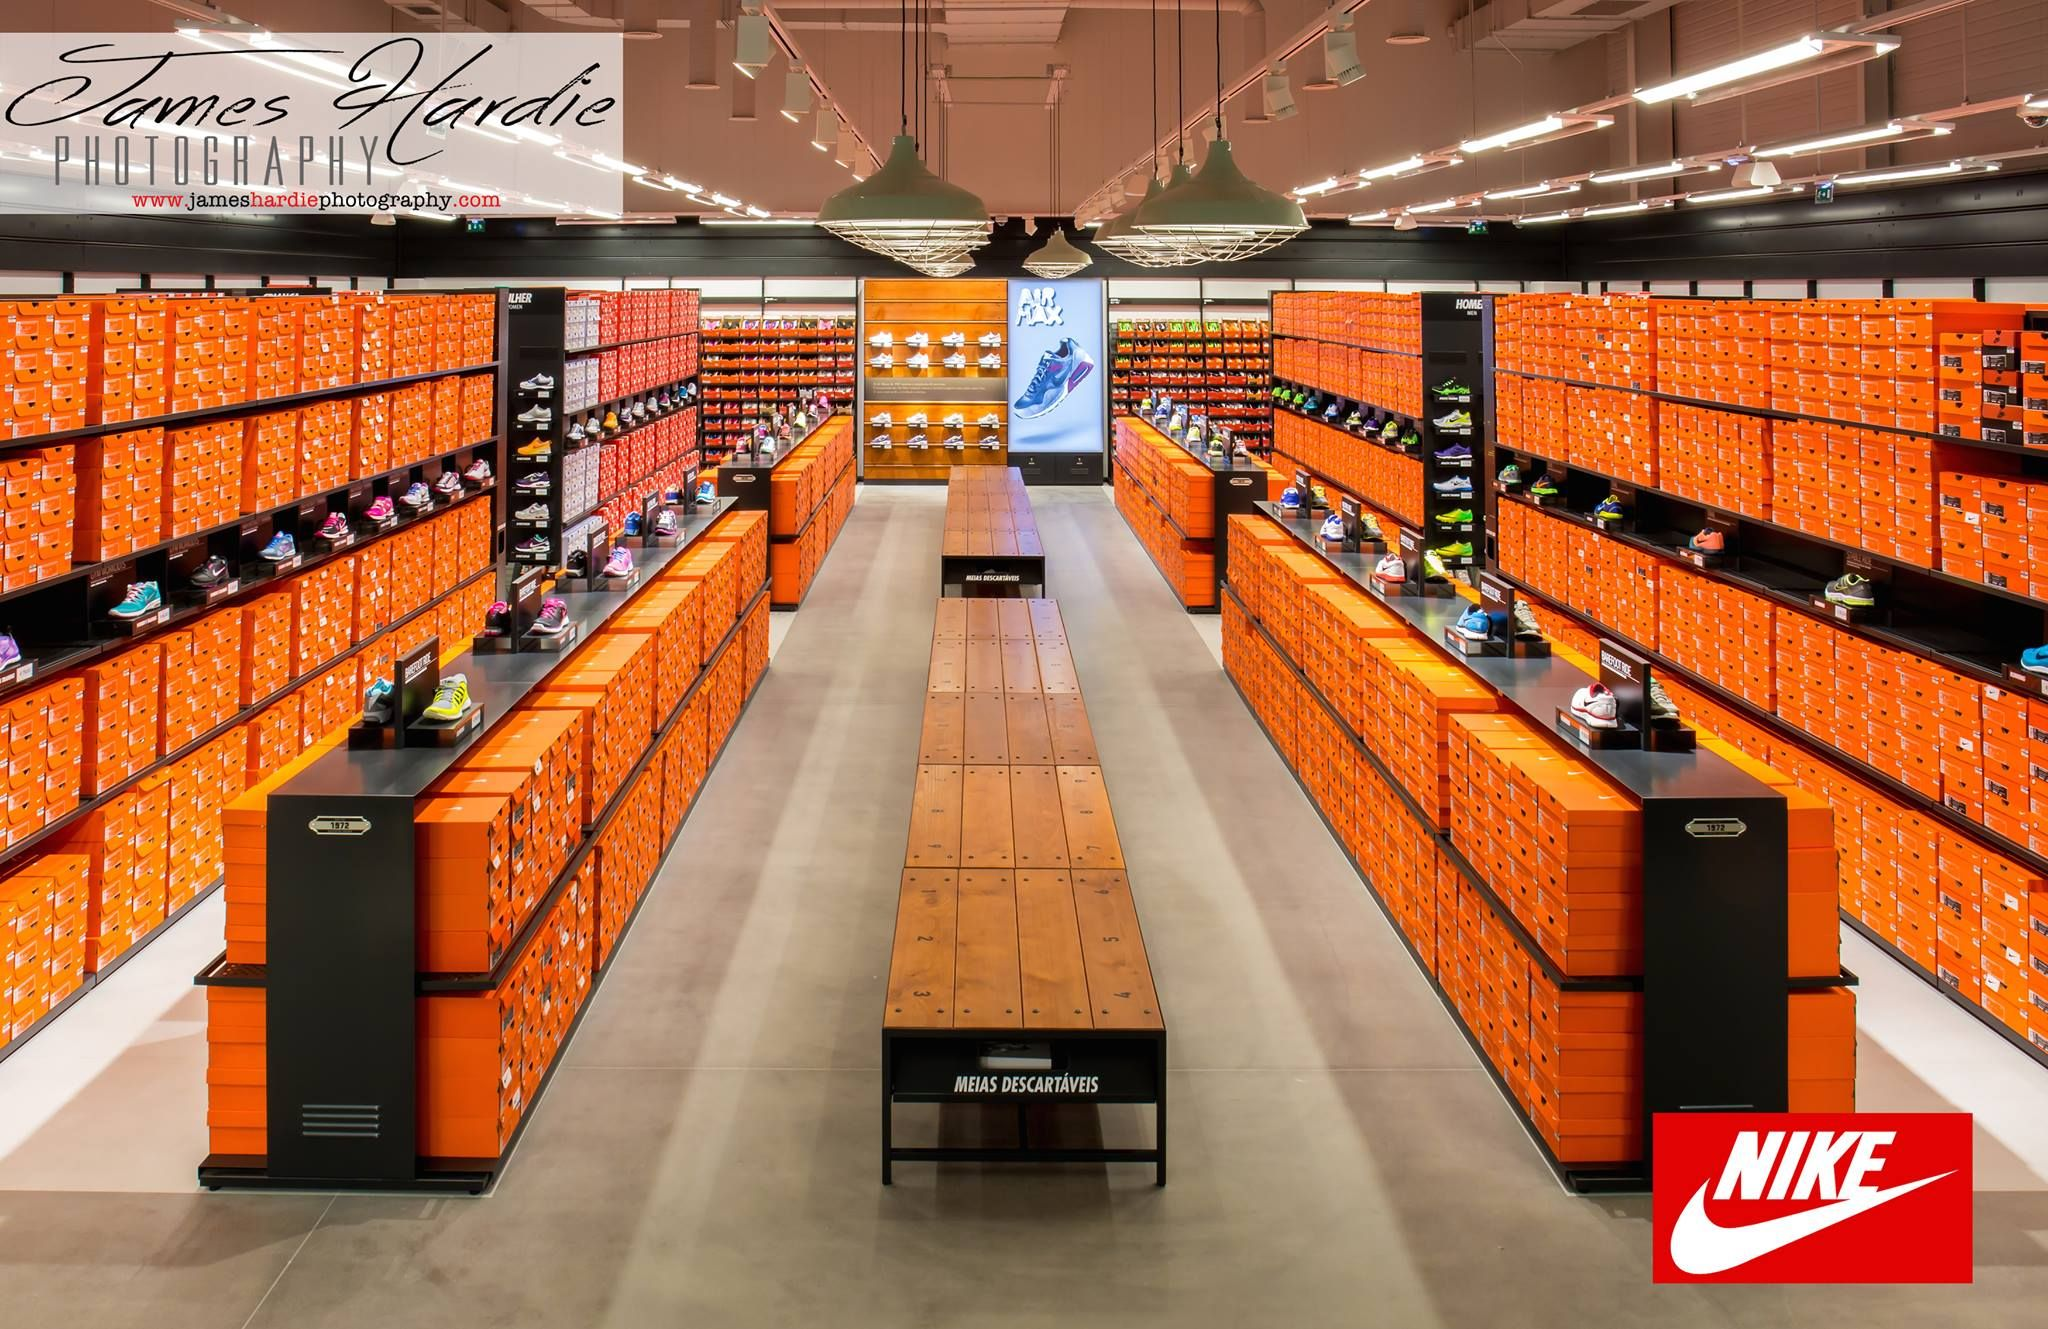 Extranjero barco Situación  Have you checked out the New Nike Factory Store yet? | Fotografie